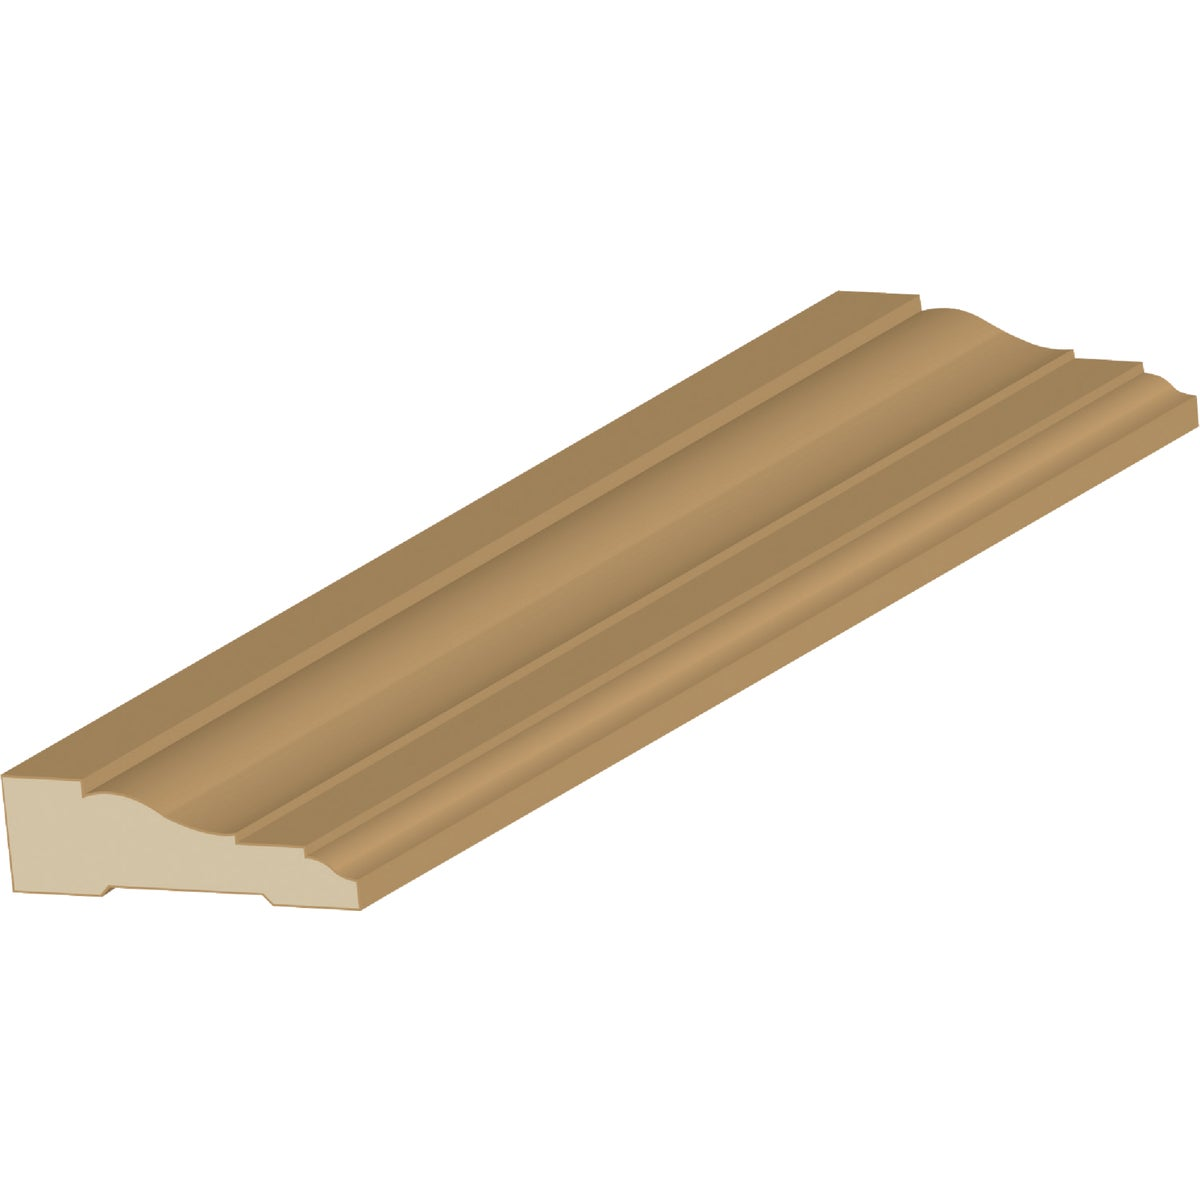 WM366 8' COL CASING - 36680PCRA by Jim White Millwork